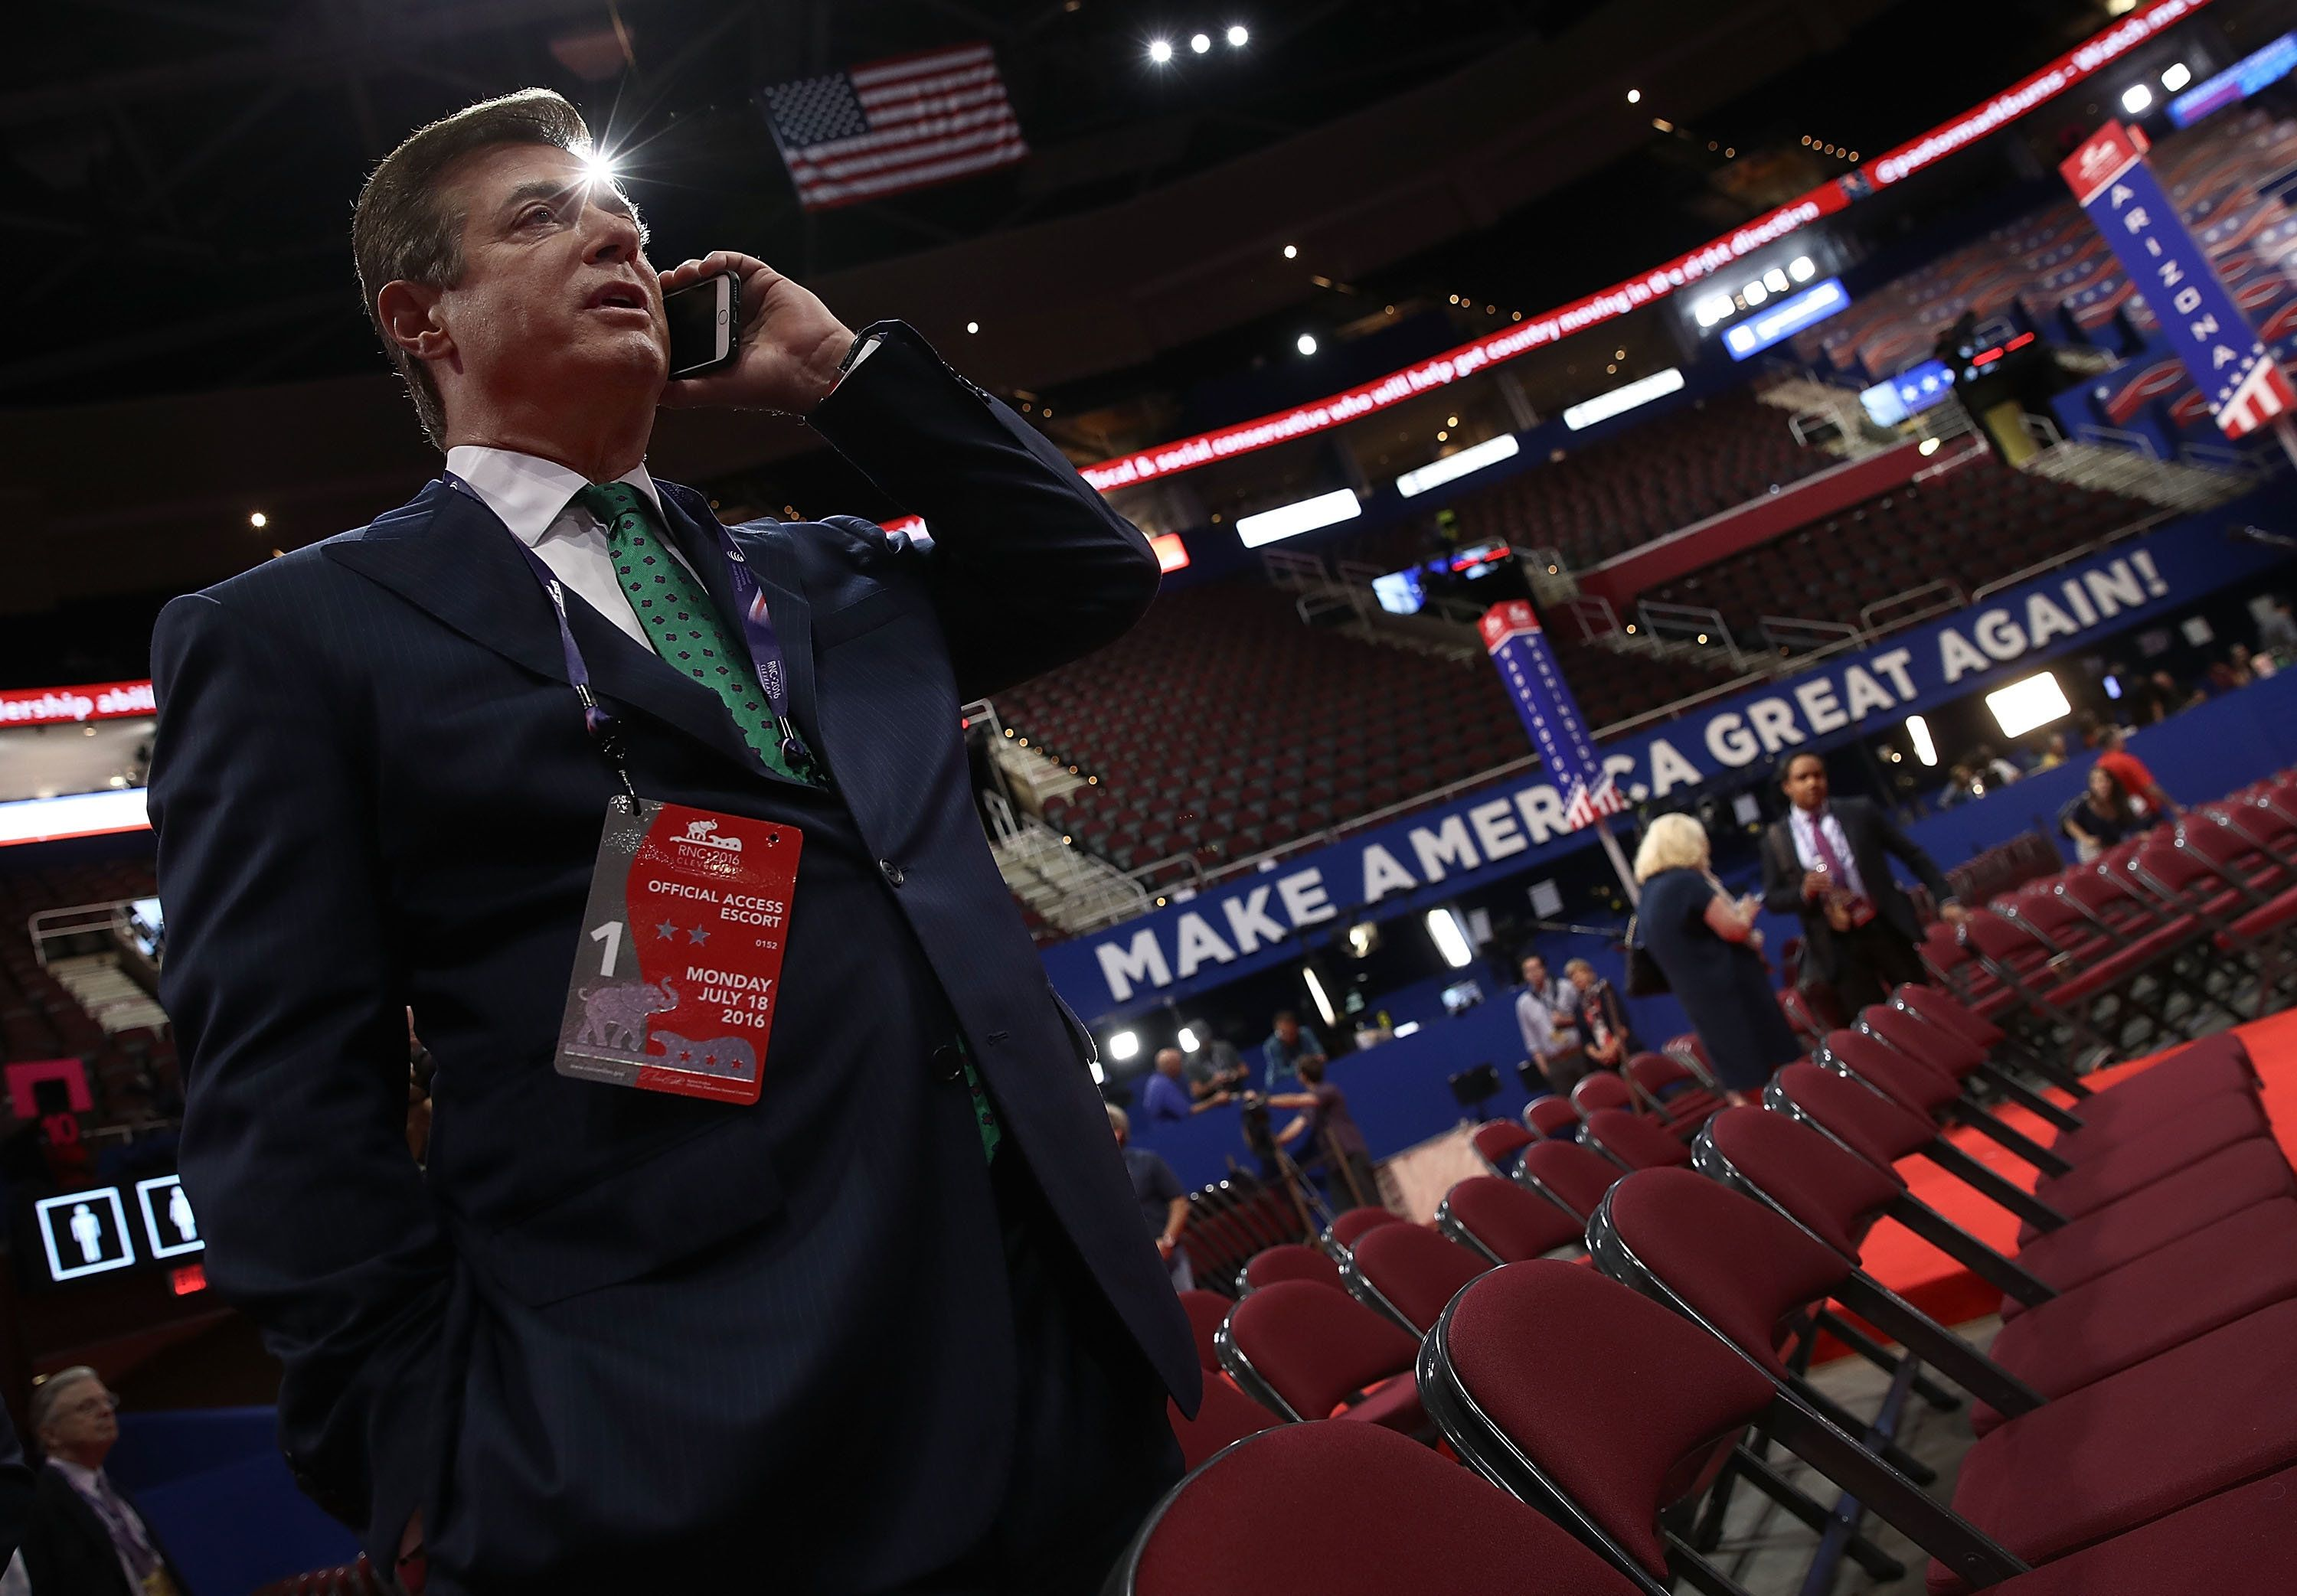 Paul Manafort makes a call while touring the floor of the Republican National Convention